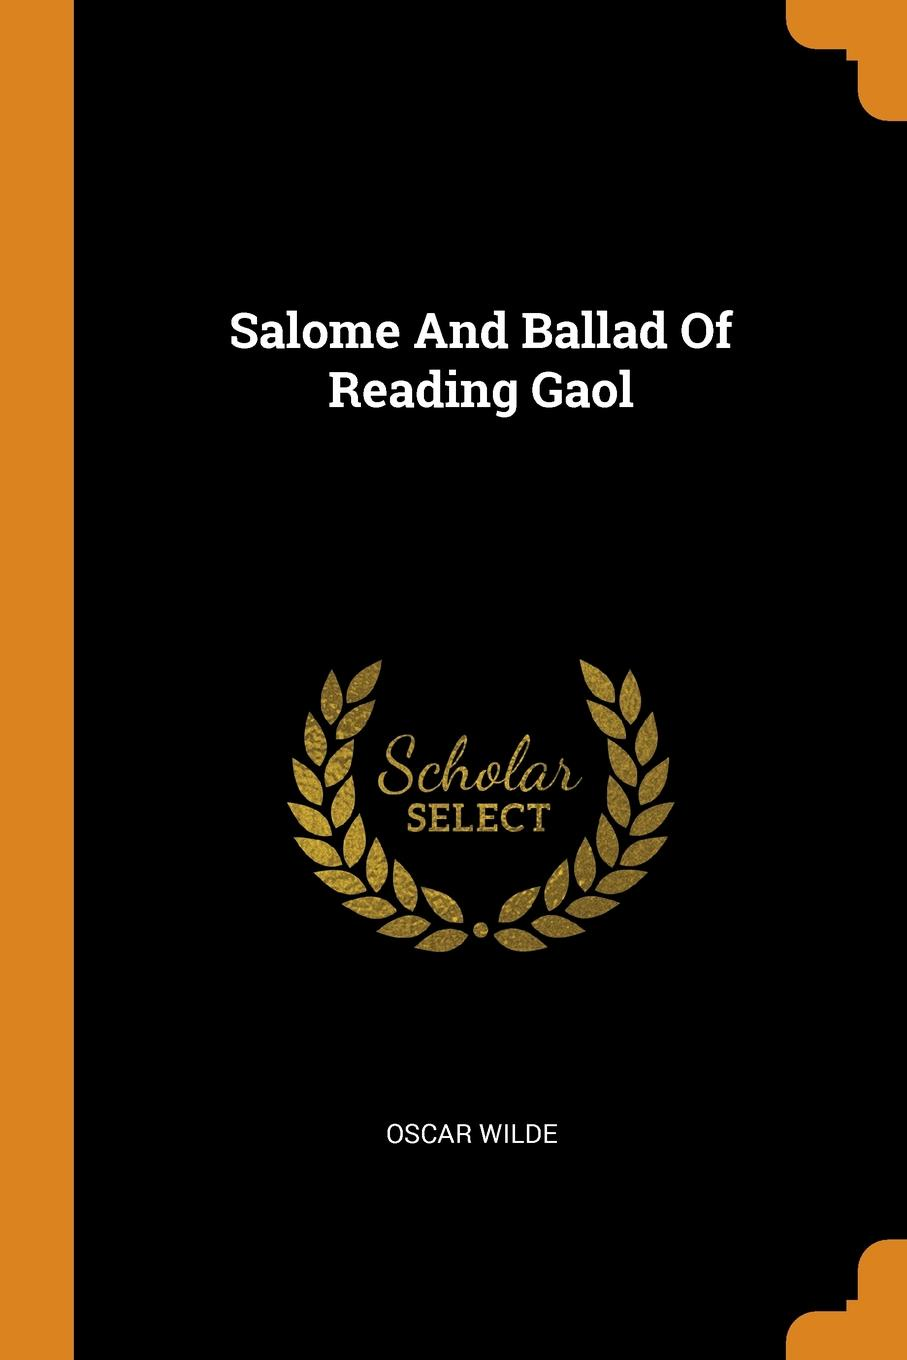 Oscar Wilde Salome And Ballad Of Reading Gaol wilde oscar de profundis the ballad of reading gaol